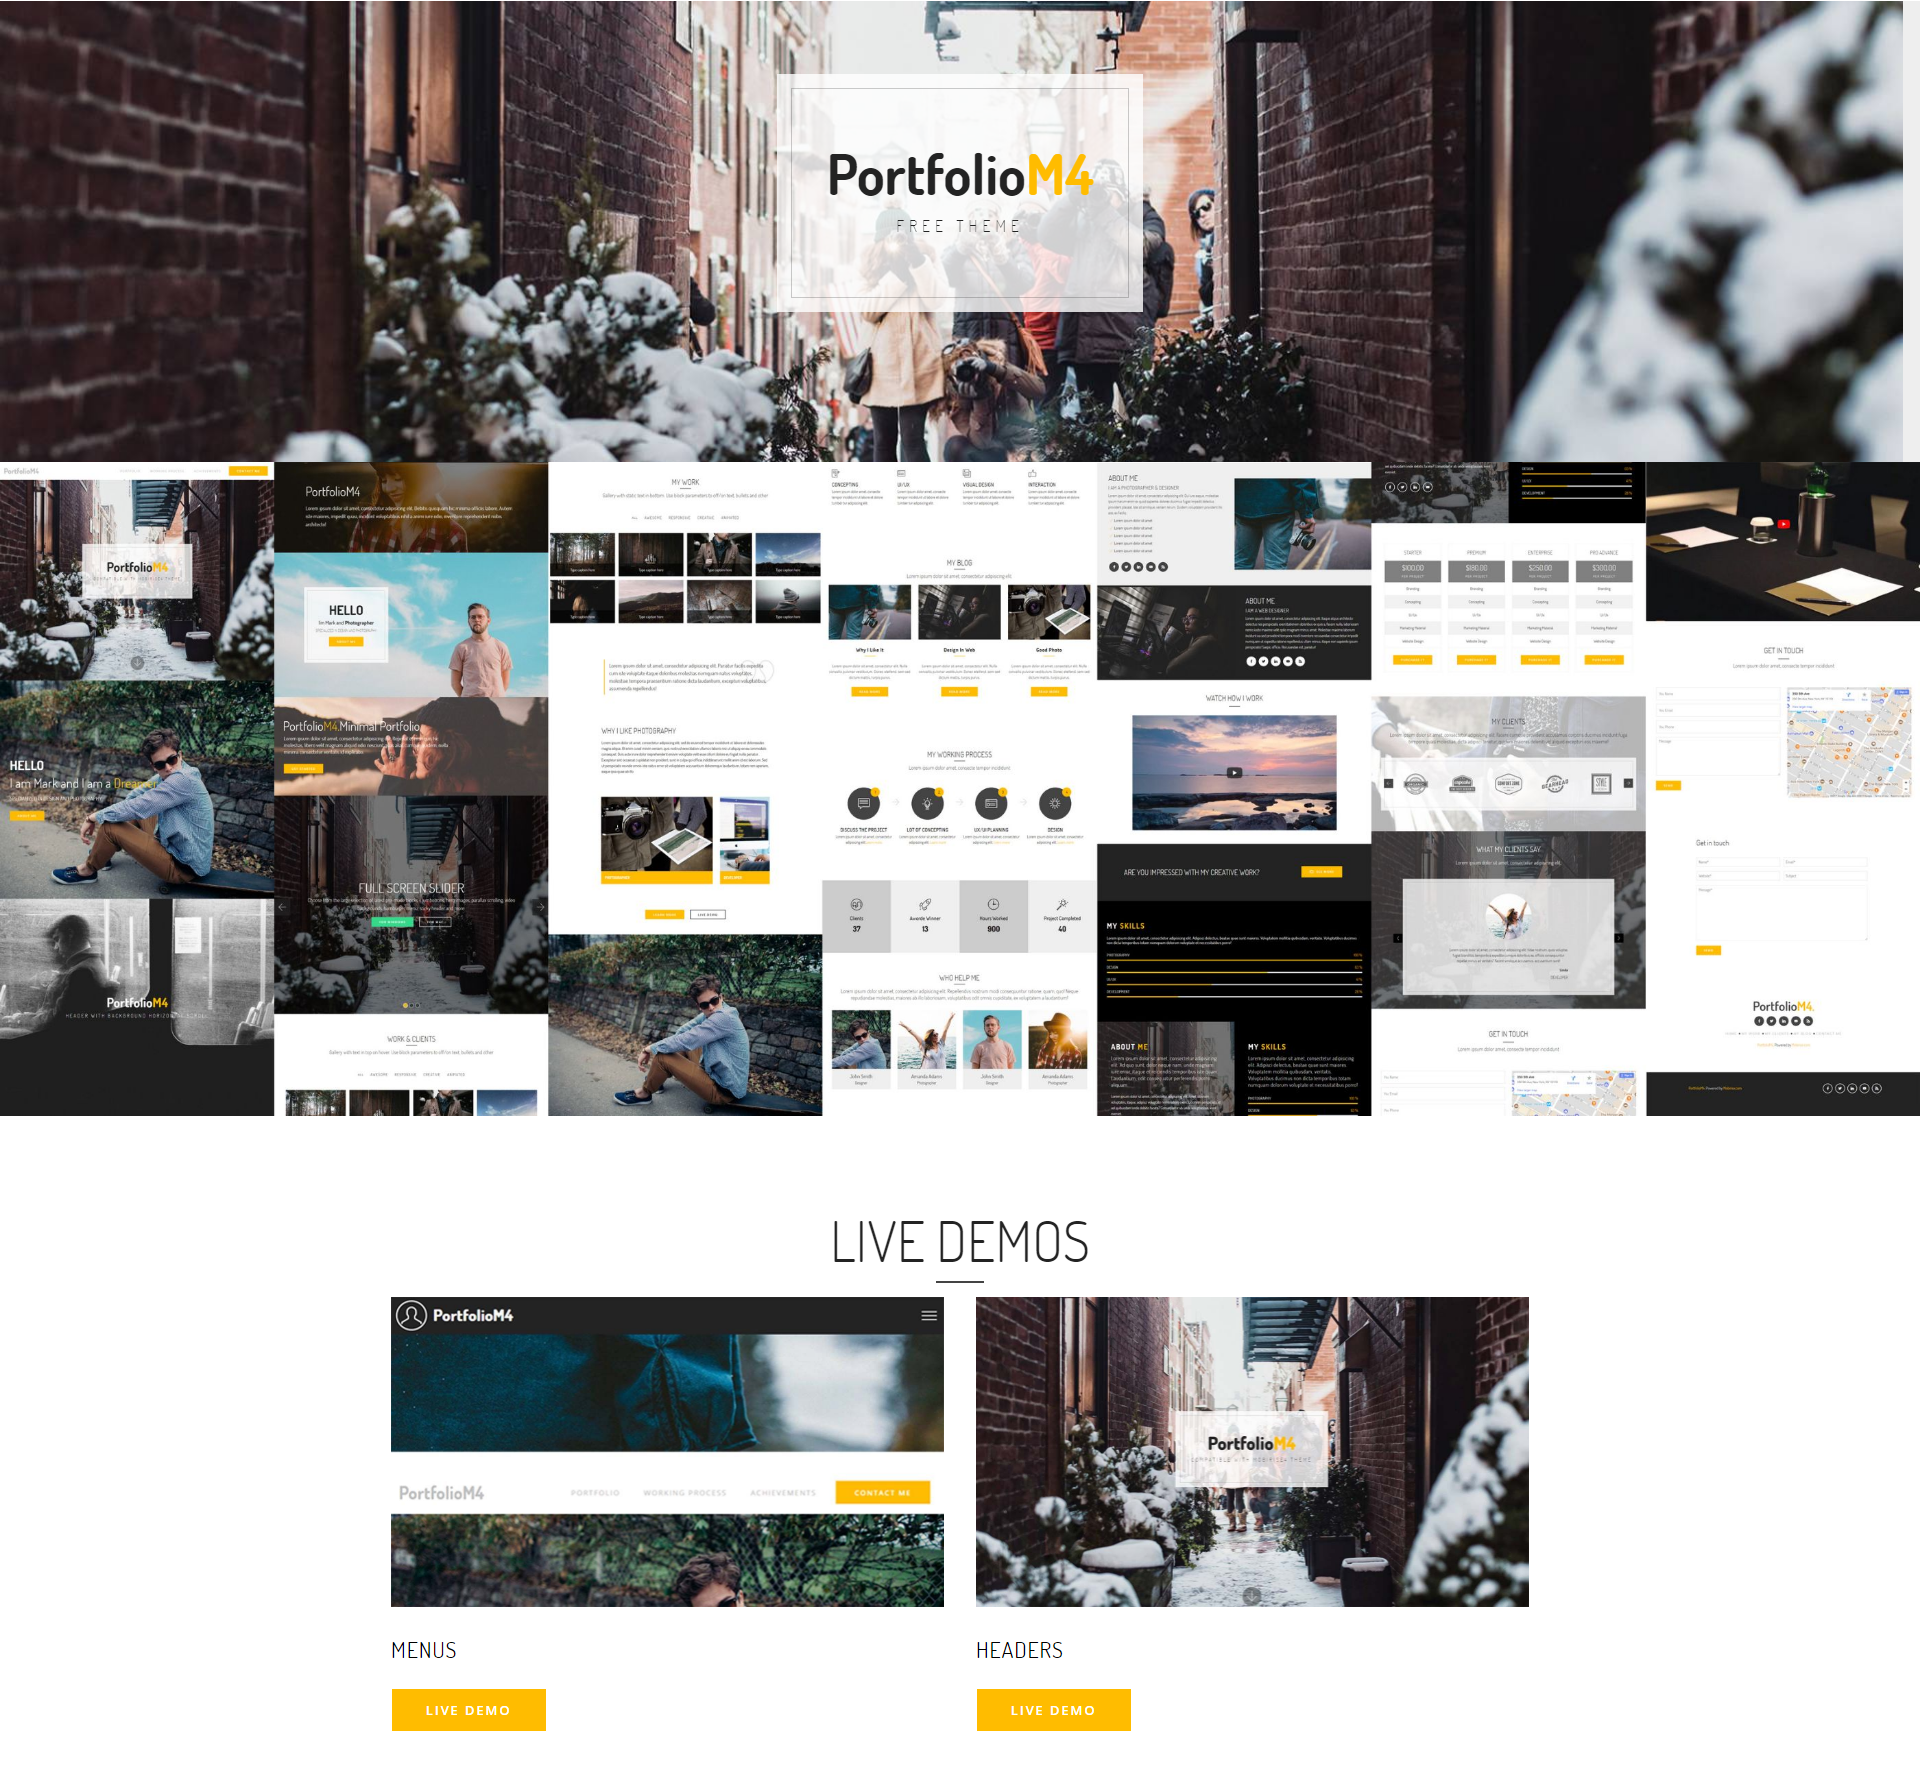 Free Download Bootstrap PortfolioM4 Templates